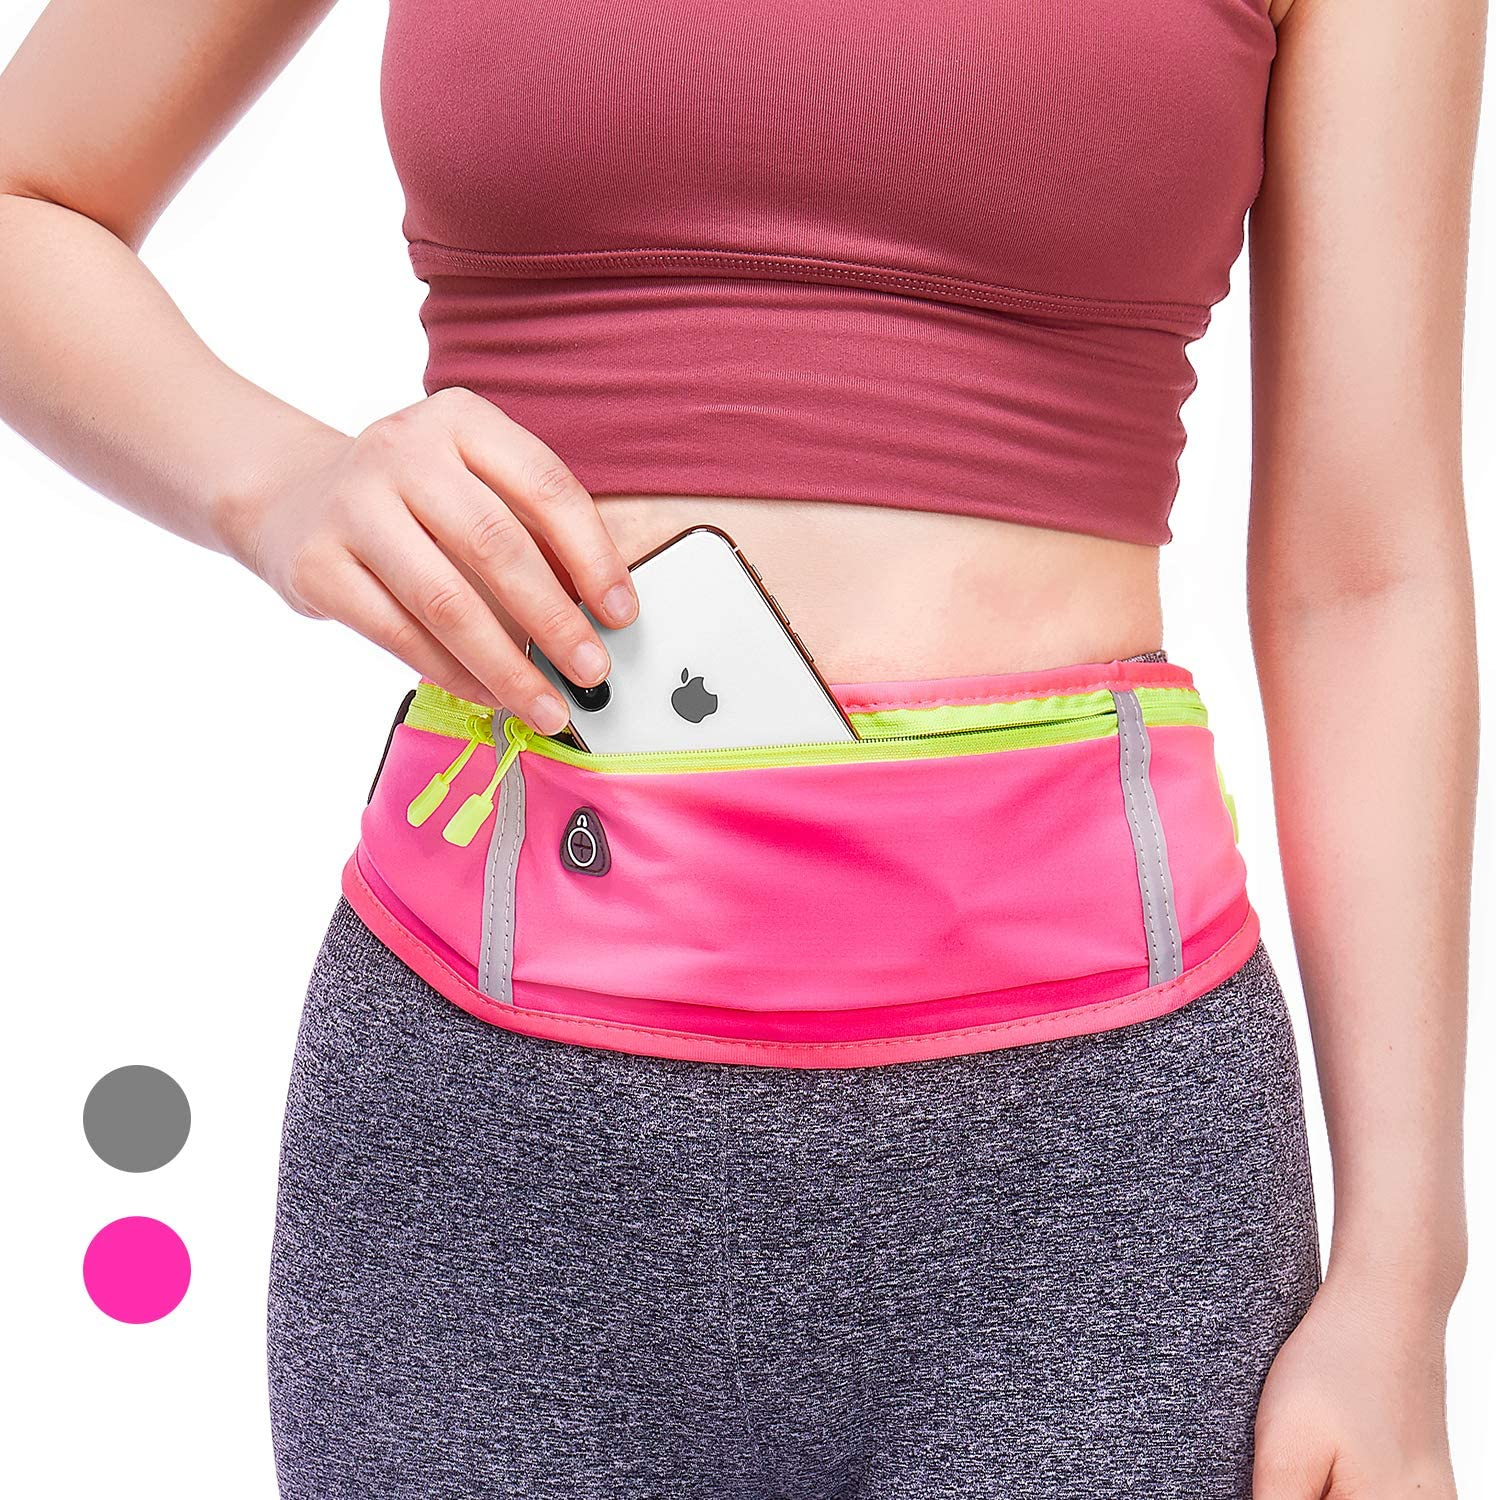 BWTY Running Belt,Adjustable Fanny Pack for women & men,Ultra Light Bounce Free Waterproof Reflective Waist Pack for Running Hiking Travel etc.Running Pouch Phone Holder Accessories for iPhone Samsung